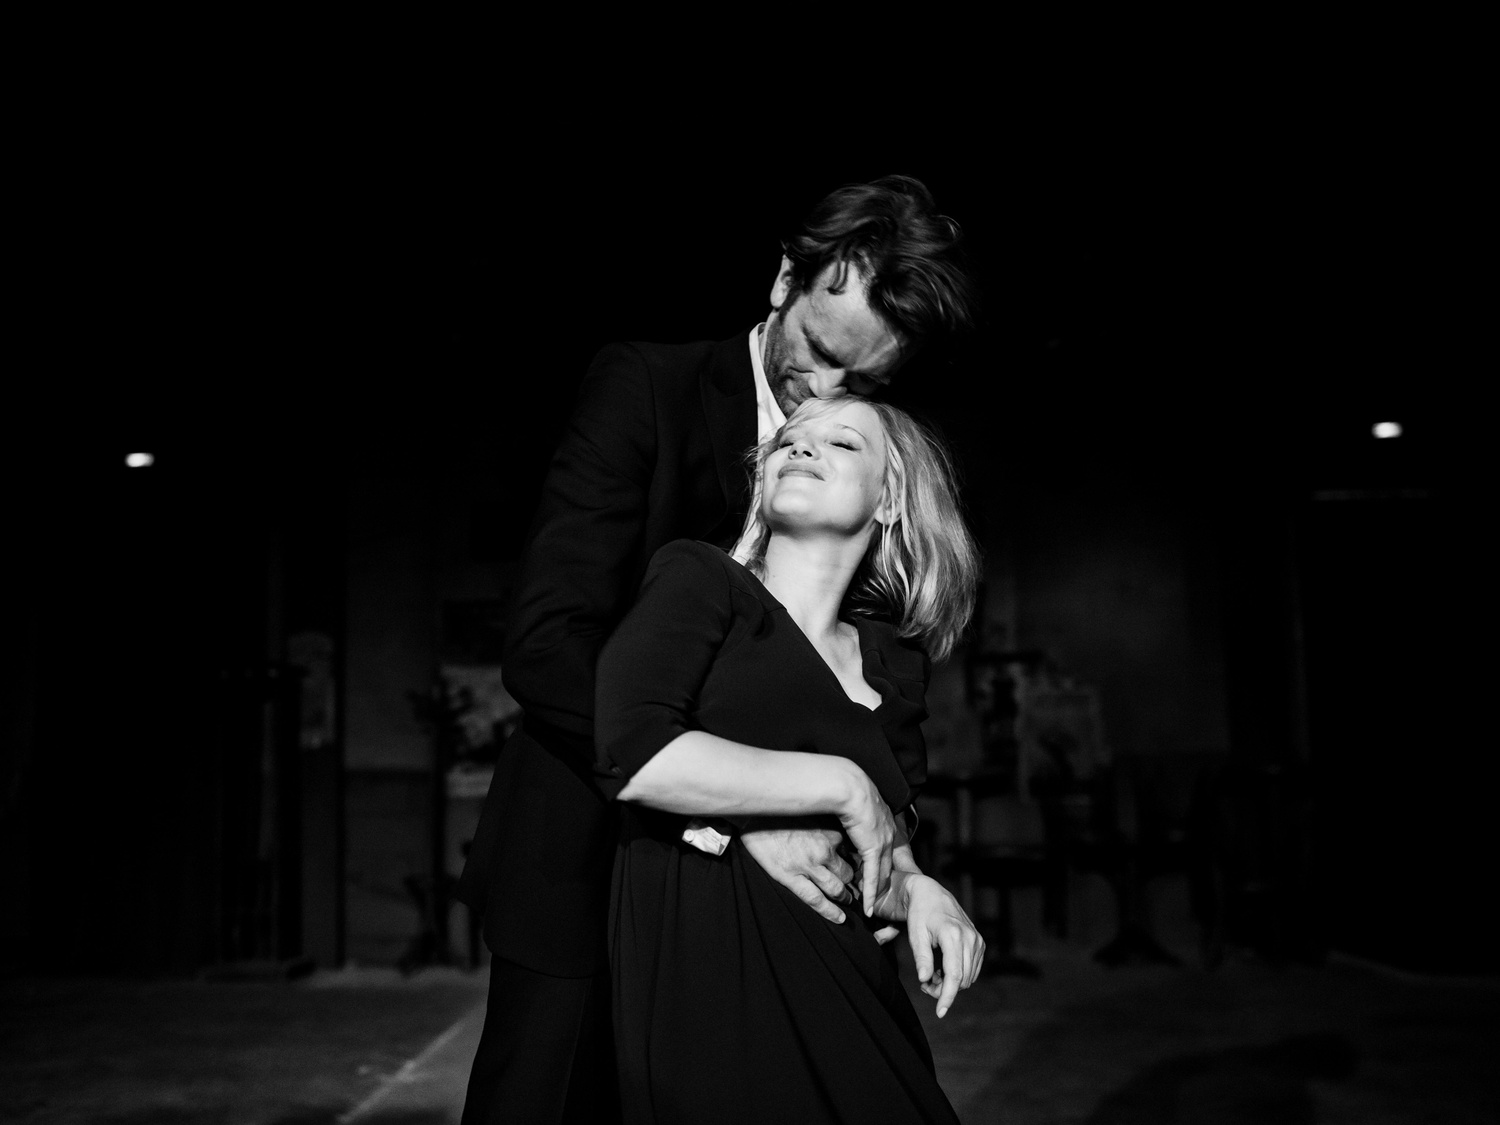 """Joanna Kulig and Tomasz Kot star in """"Cold War,"""" Pawel Pawlikowski's denuded love story set against the backdrop of Cold War-ravaged Europe."""